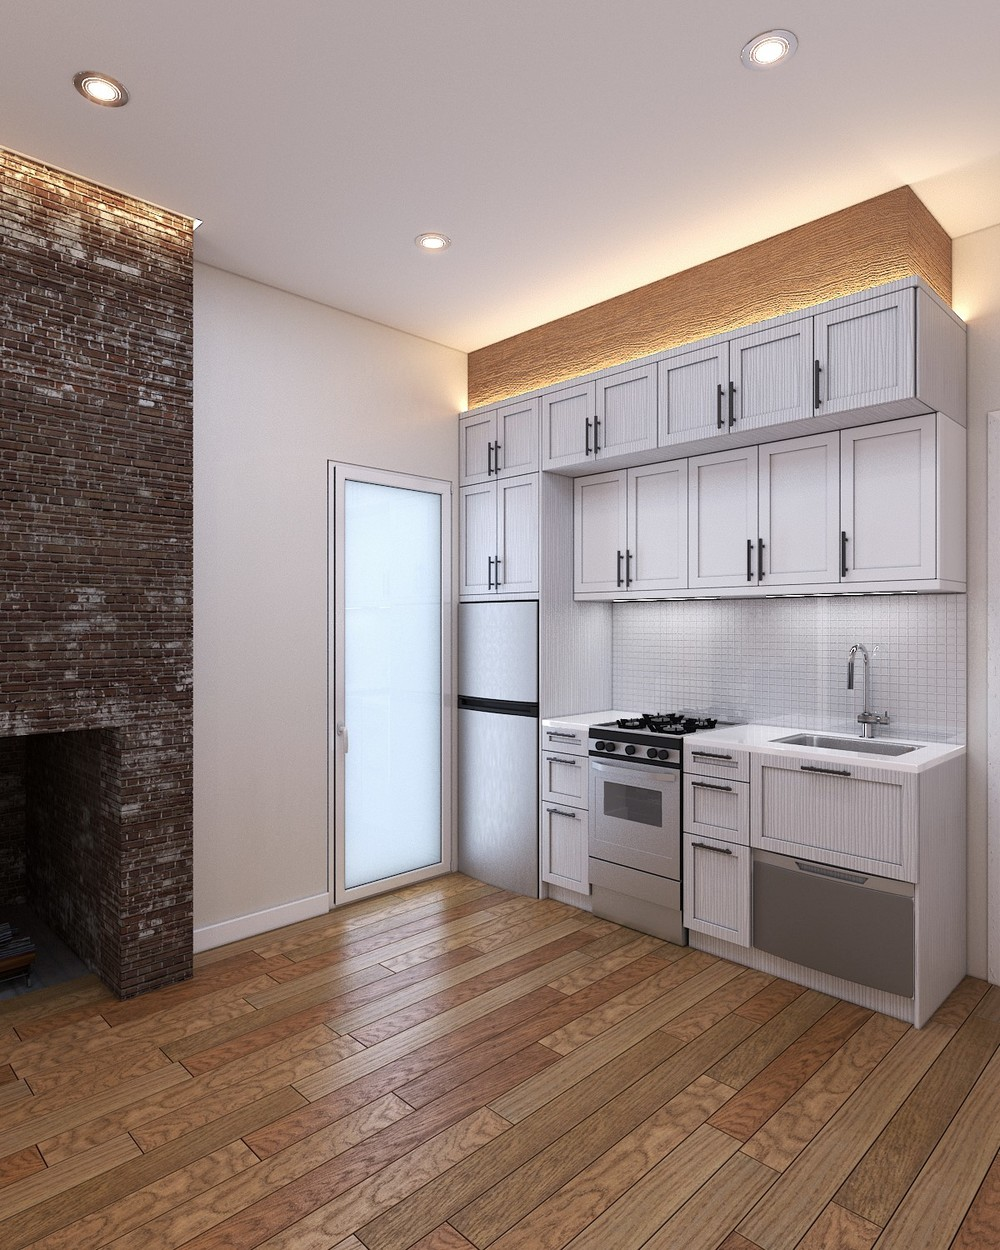 233 MALCOLM X FINAL KITCHEN RENDERING.jpg